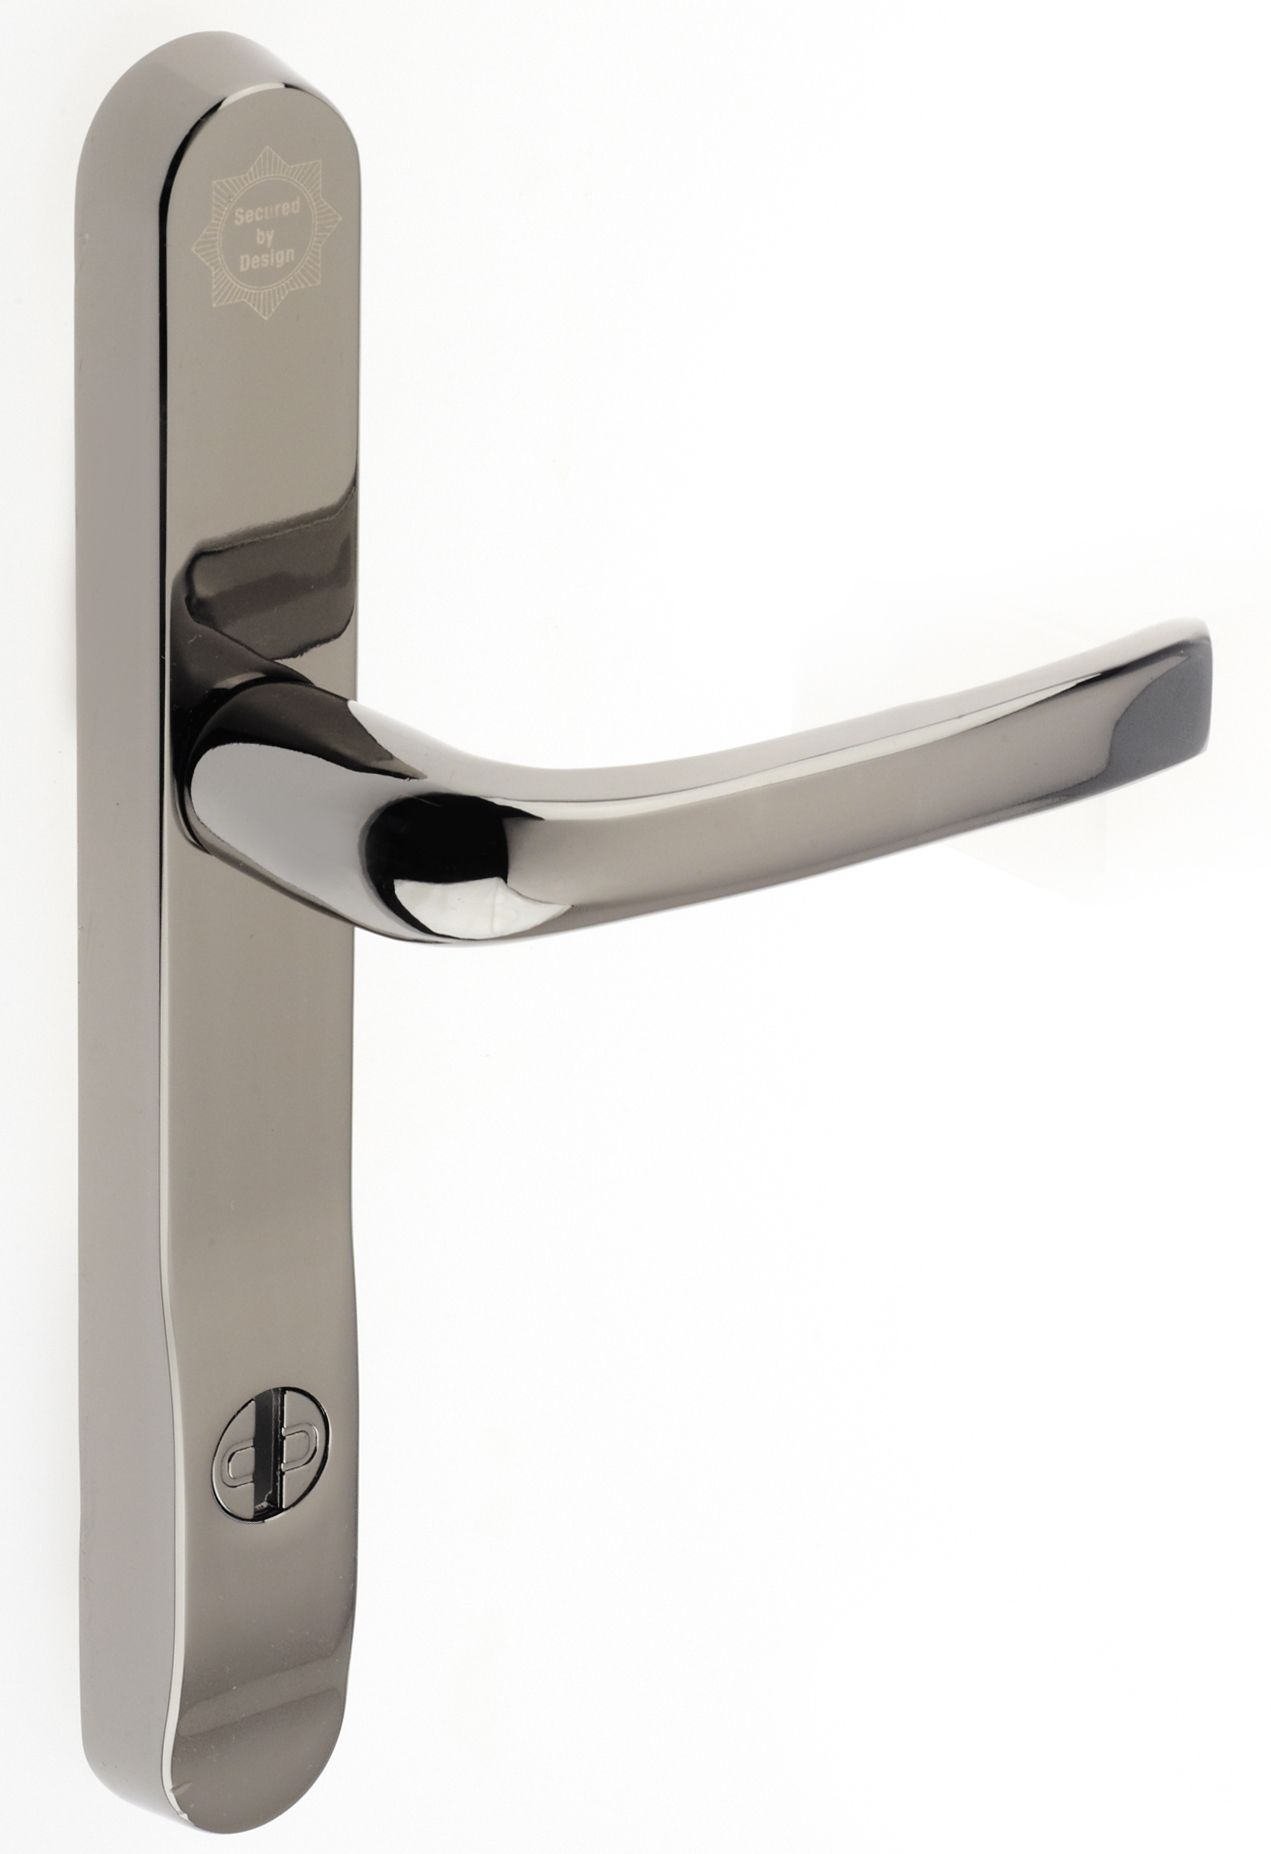 Mila ProSecure Long PAS24 High Security Door Handle TS007 2 Star